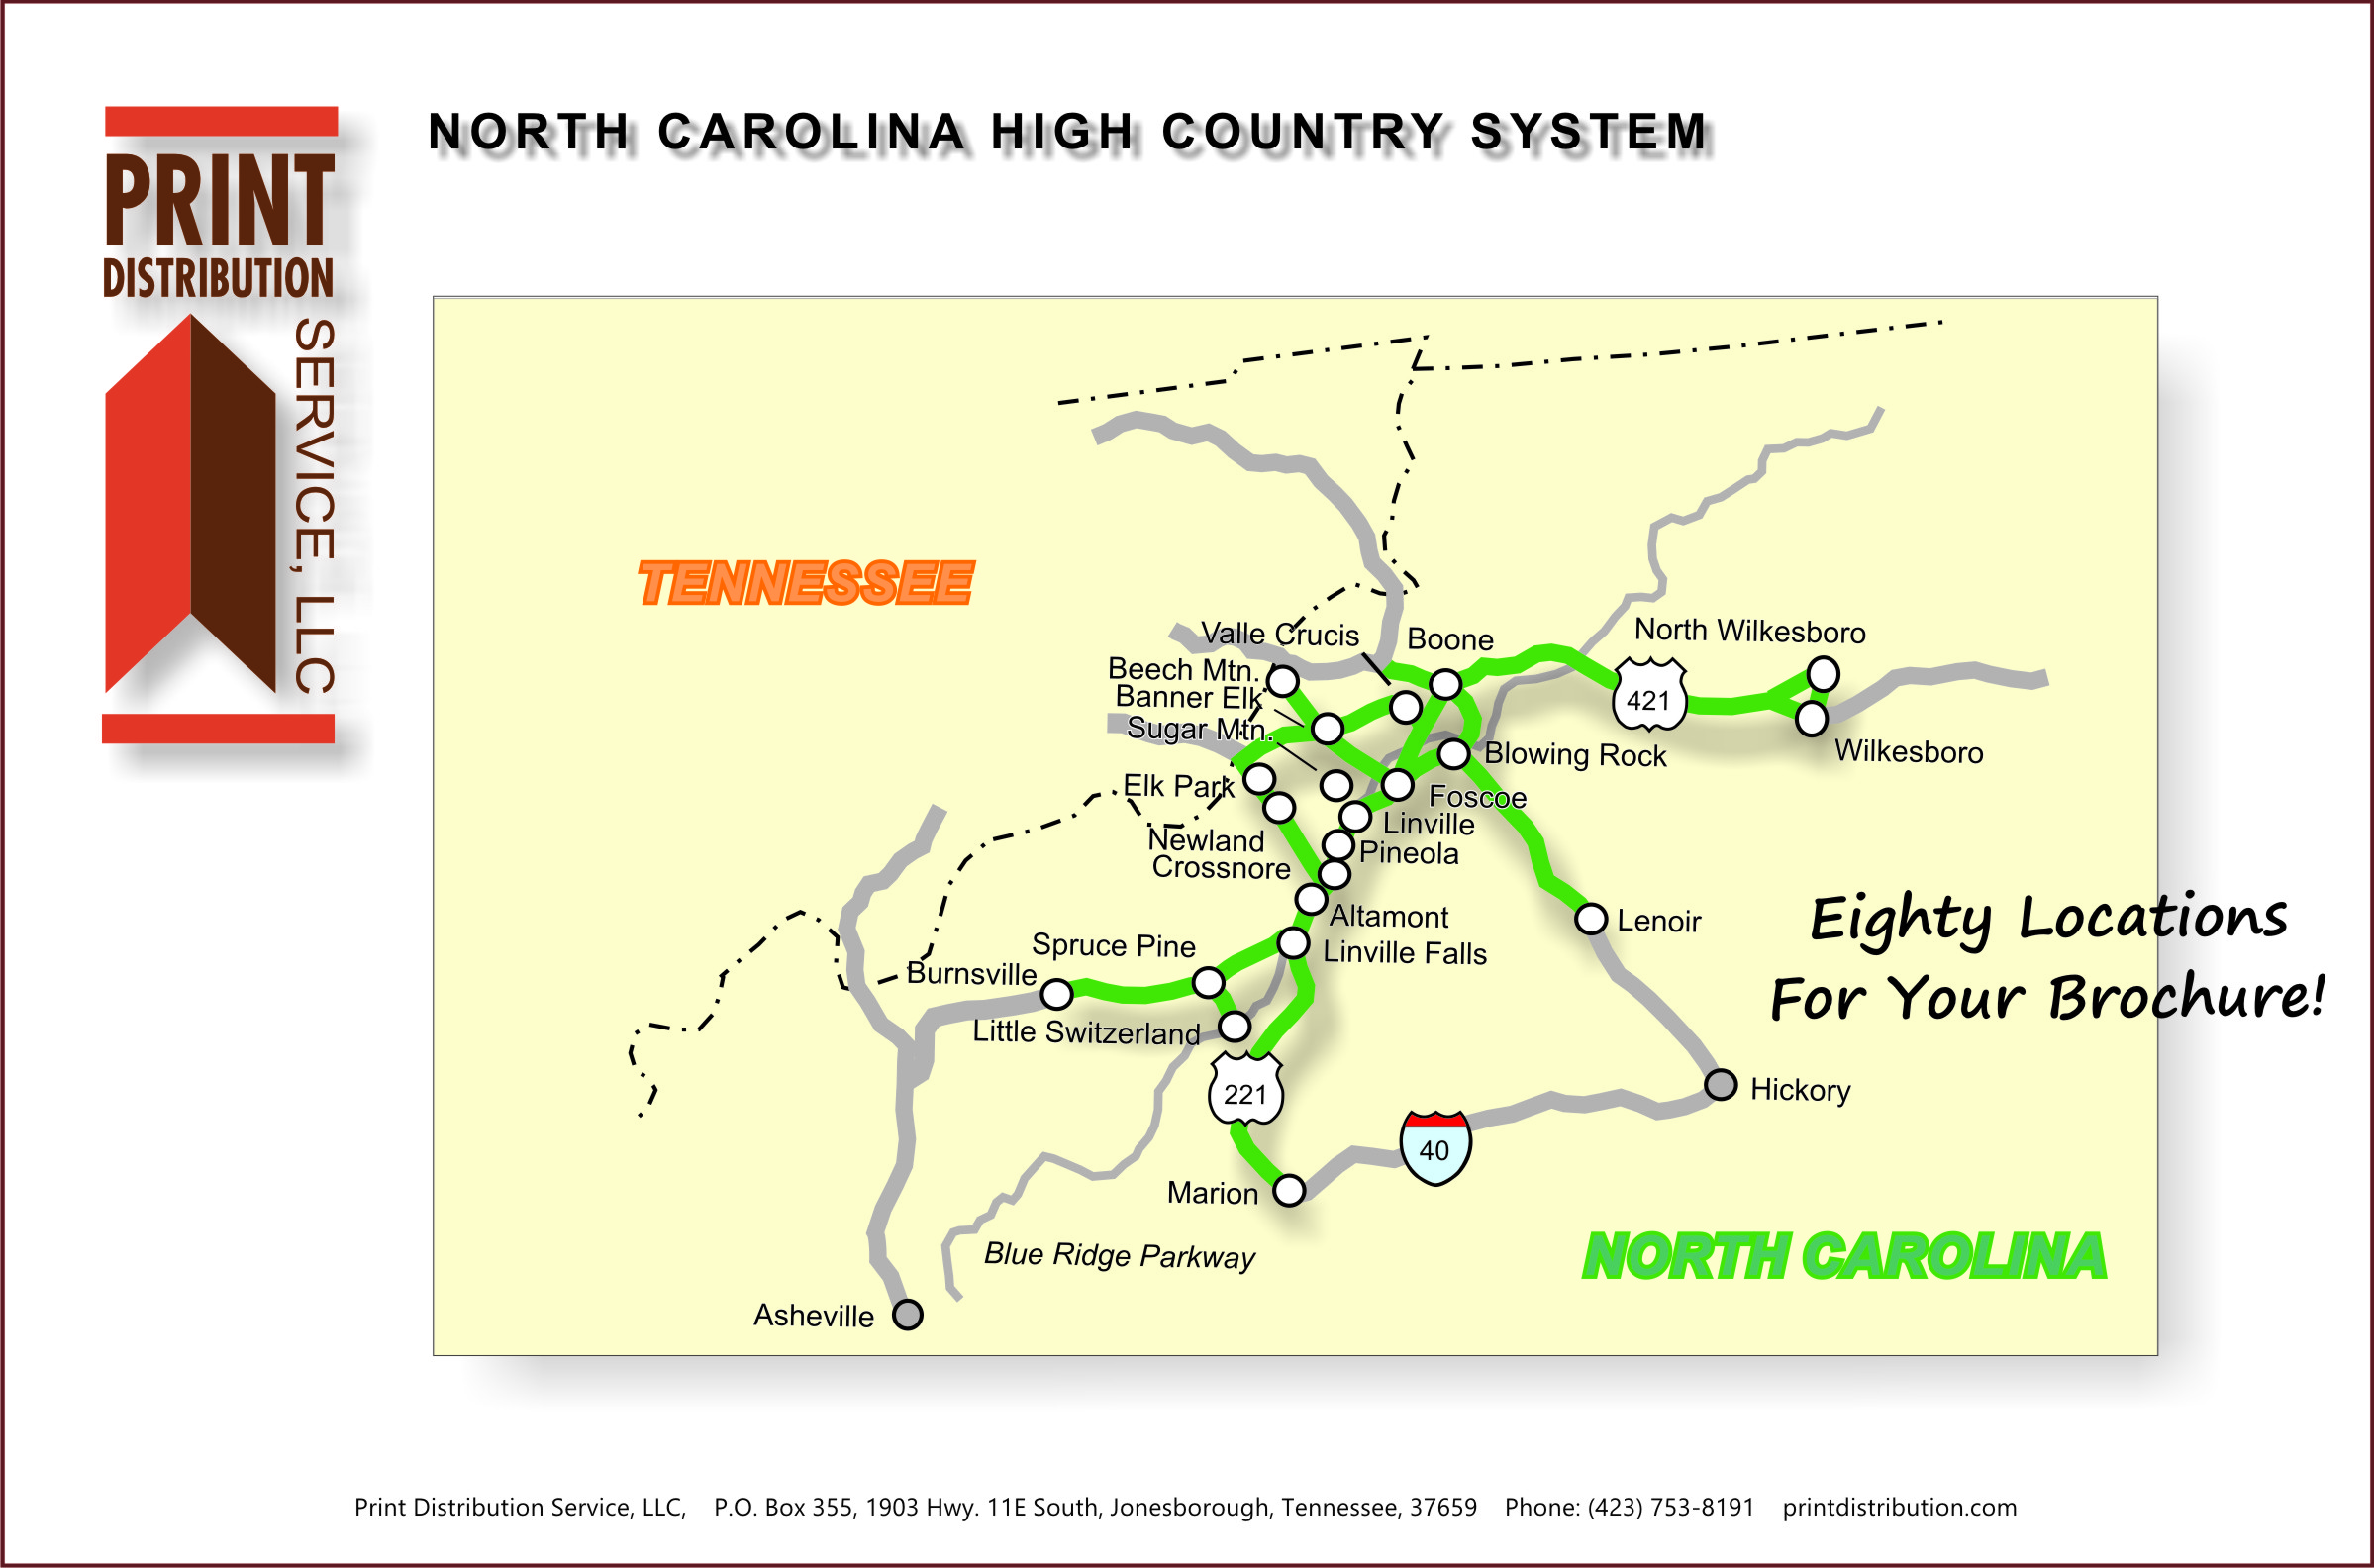 High Country North Carolina System